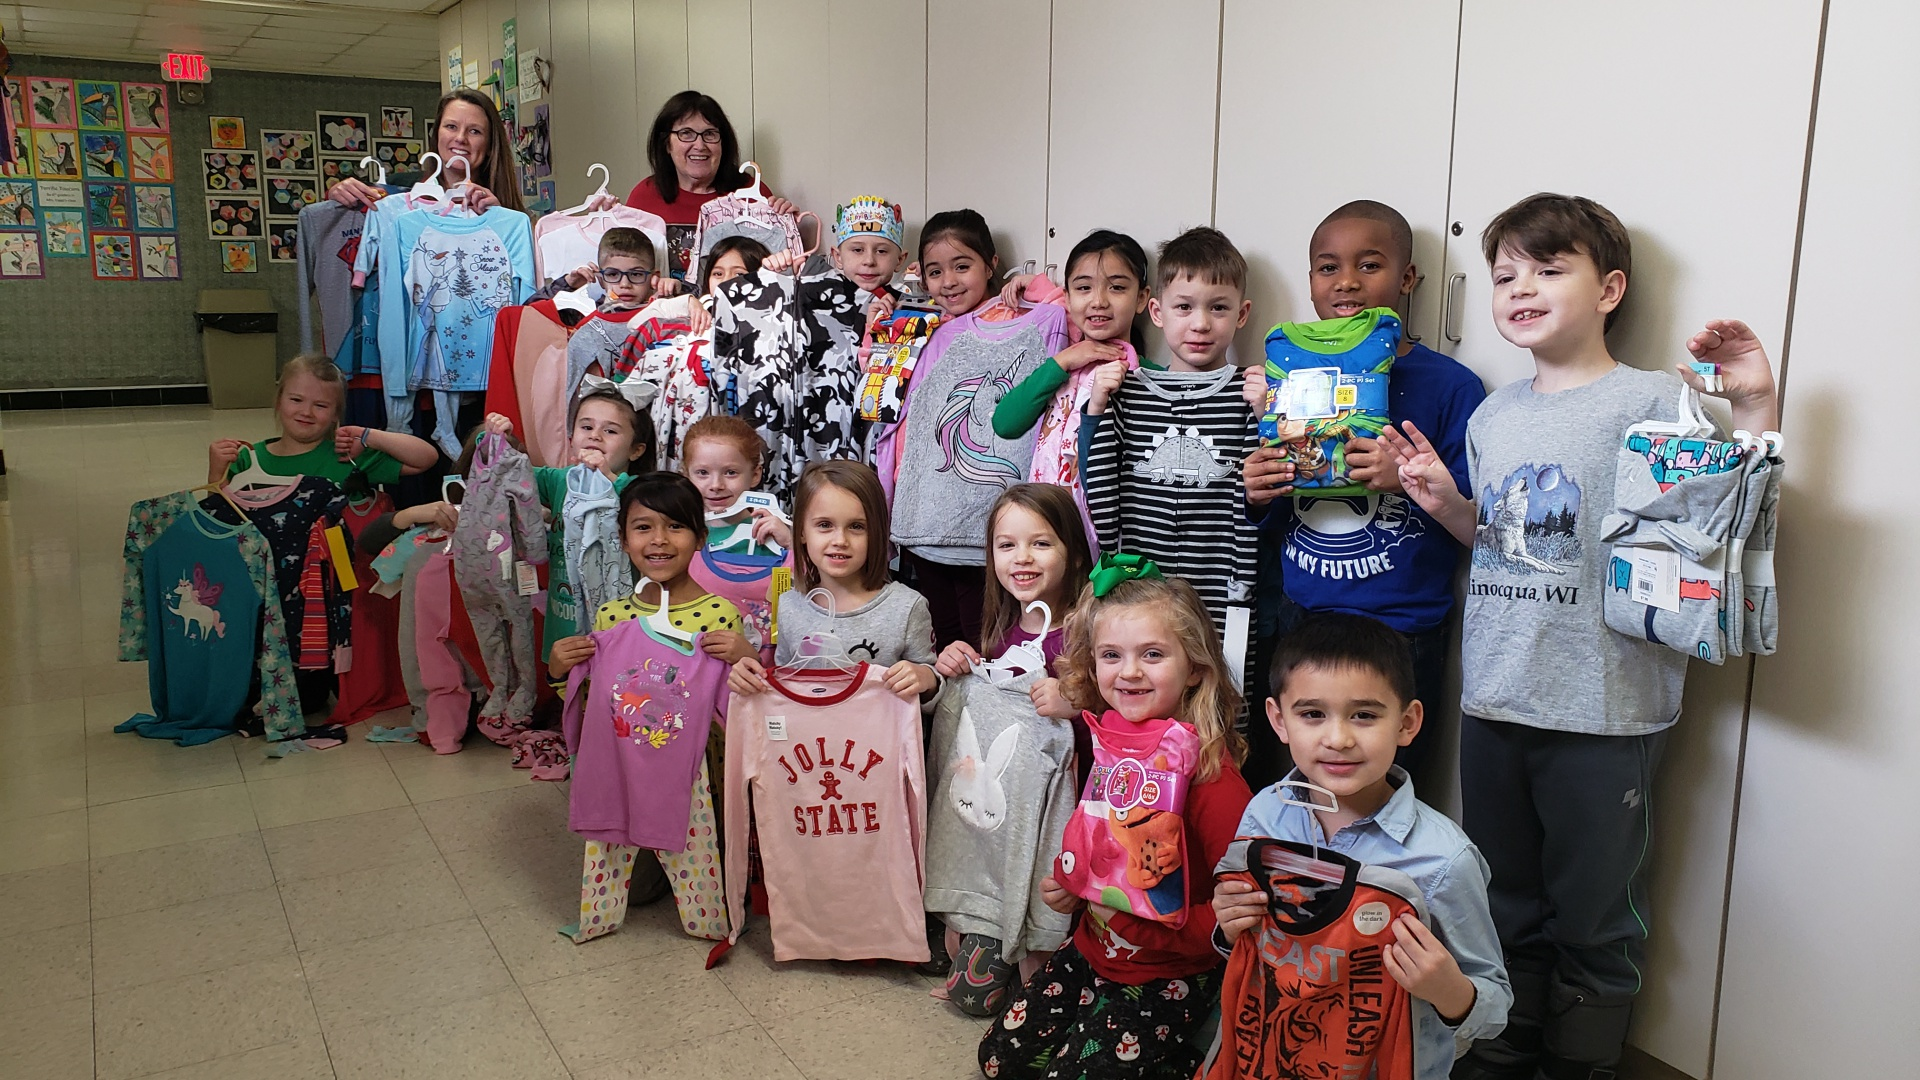 1st Grade Students Donate 56 Pajama Sets to the Great Bedtime Story Pajama Drive